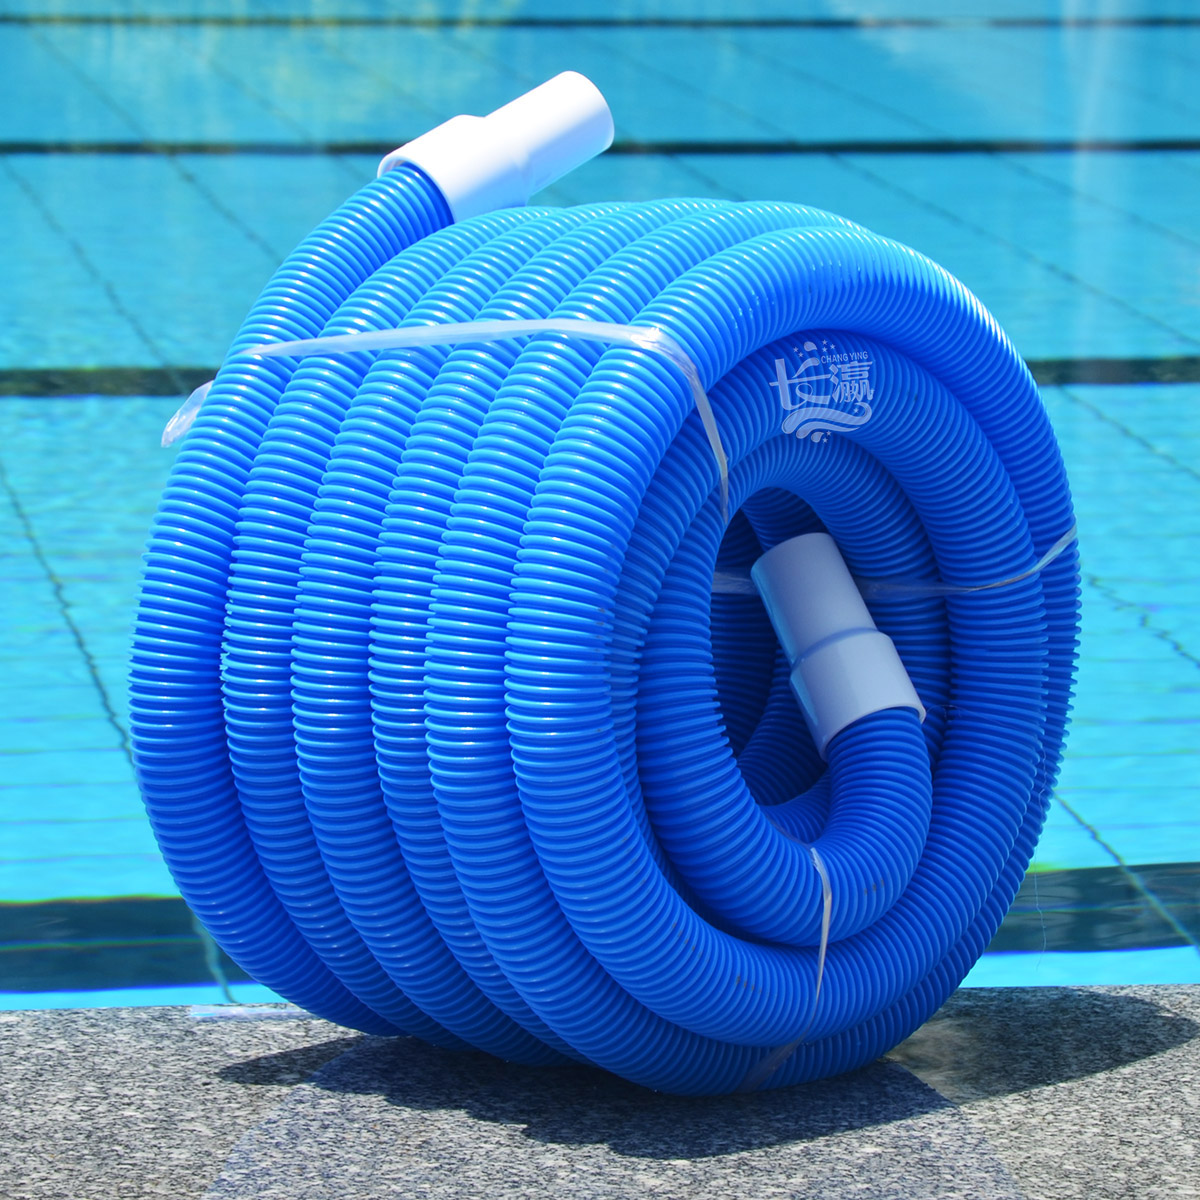 Buy Swimming pool cleaning and maintenance equipment tools ...